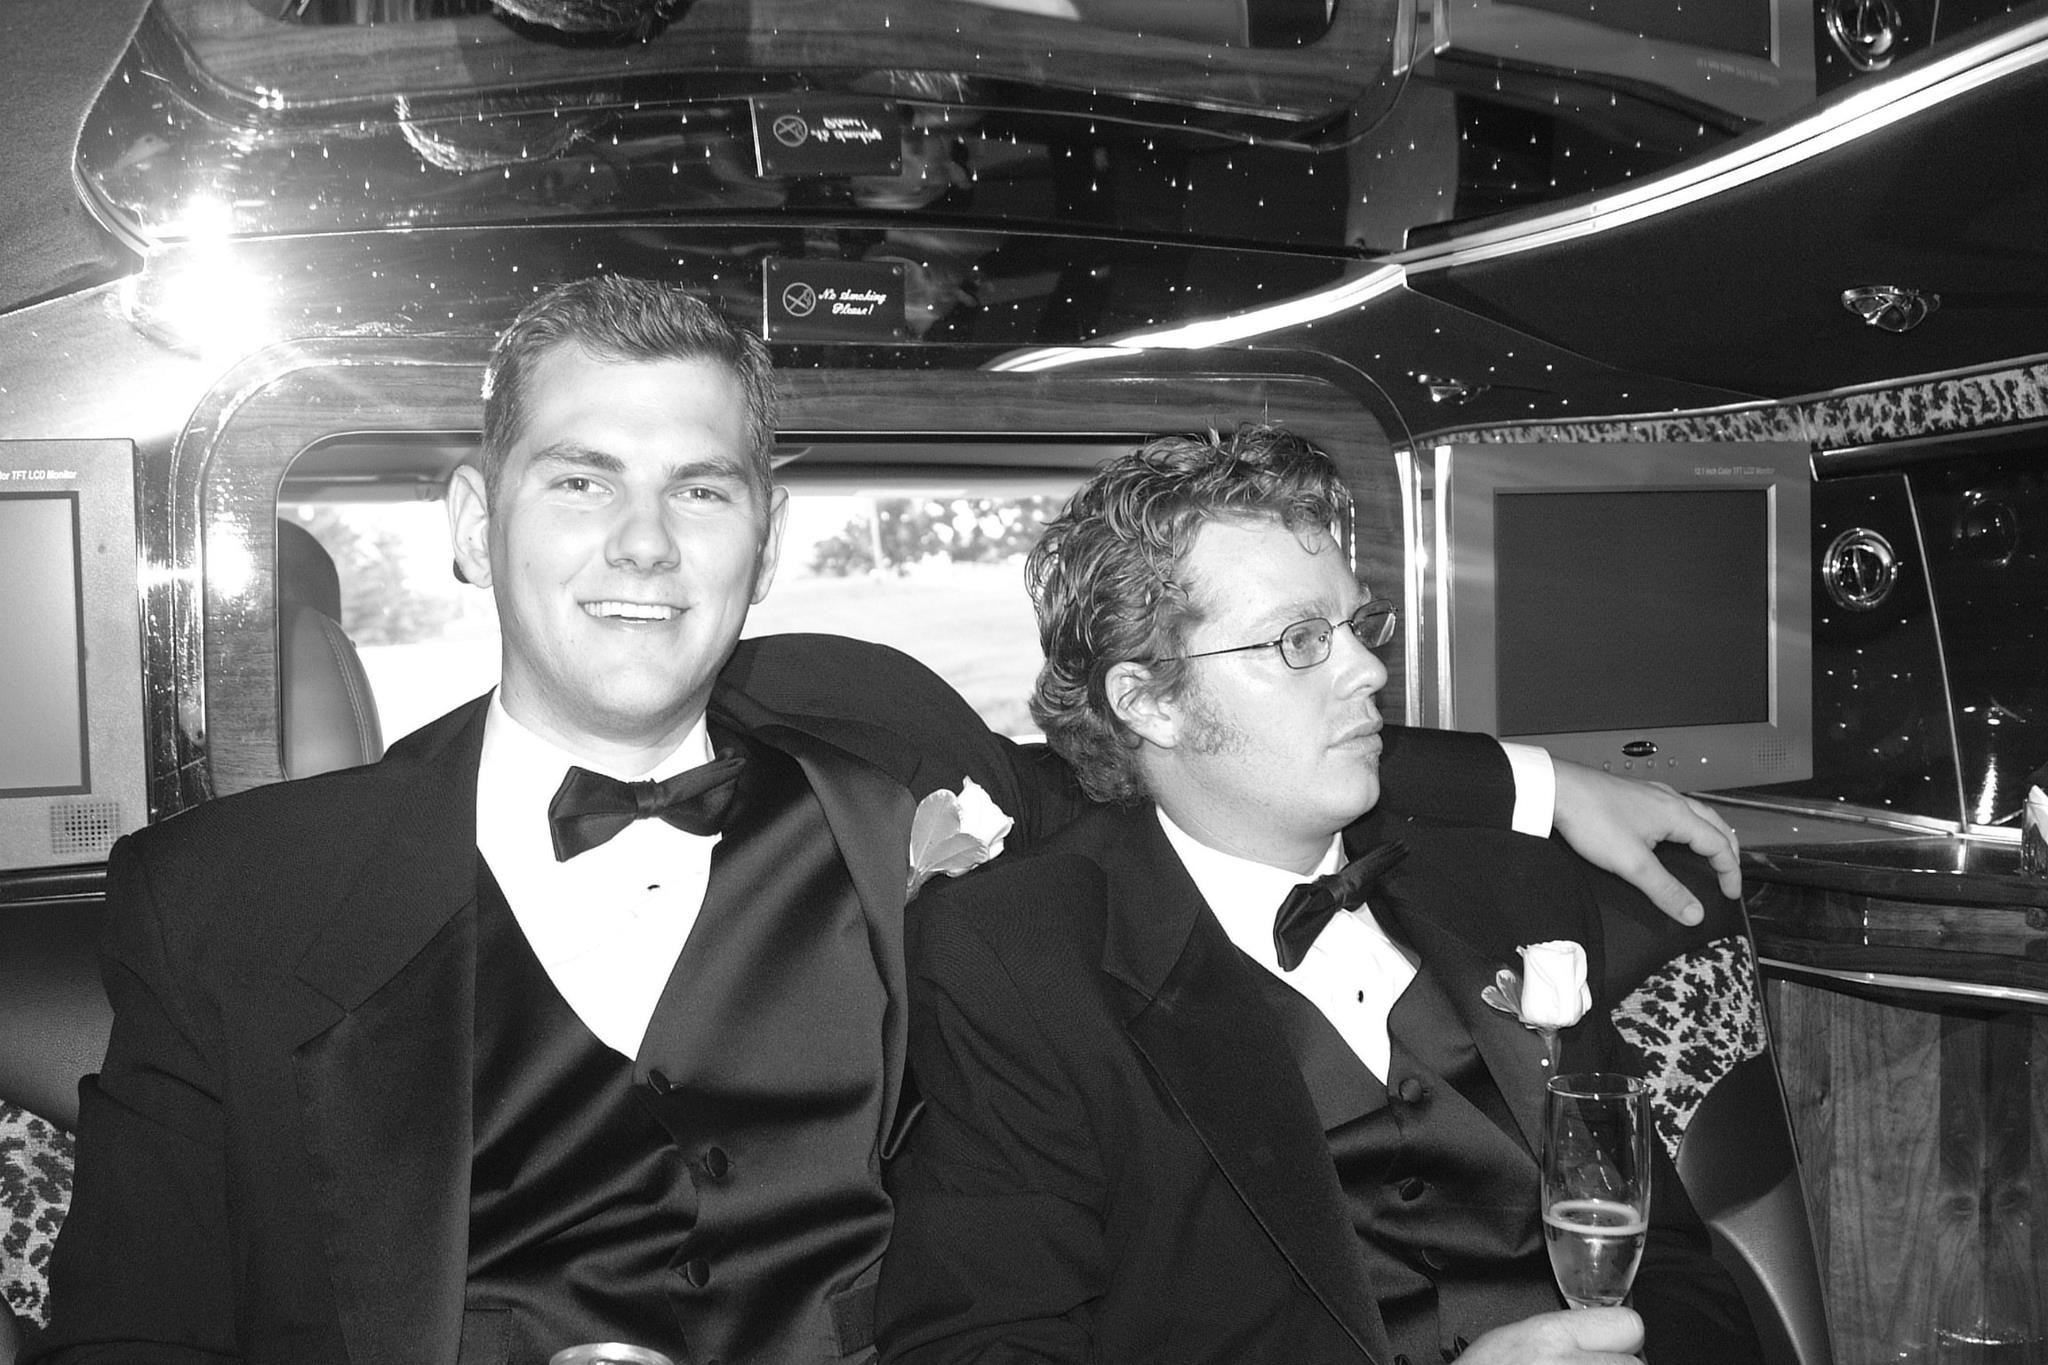 Kevin and I headed to or from (can't remember) or friend's wedding.